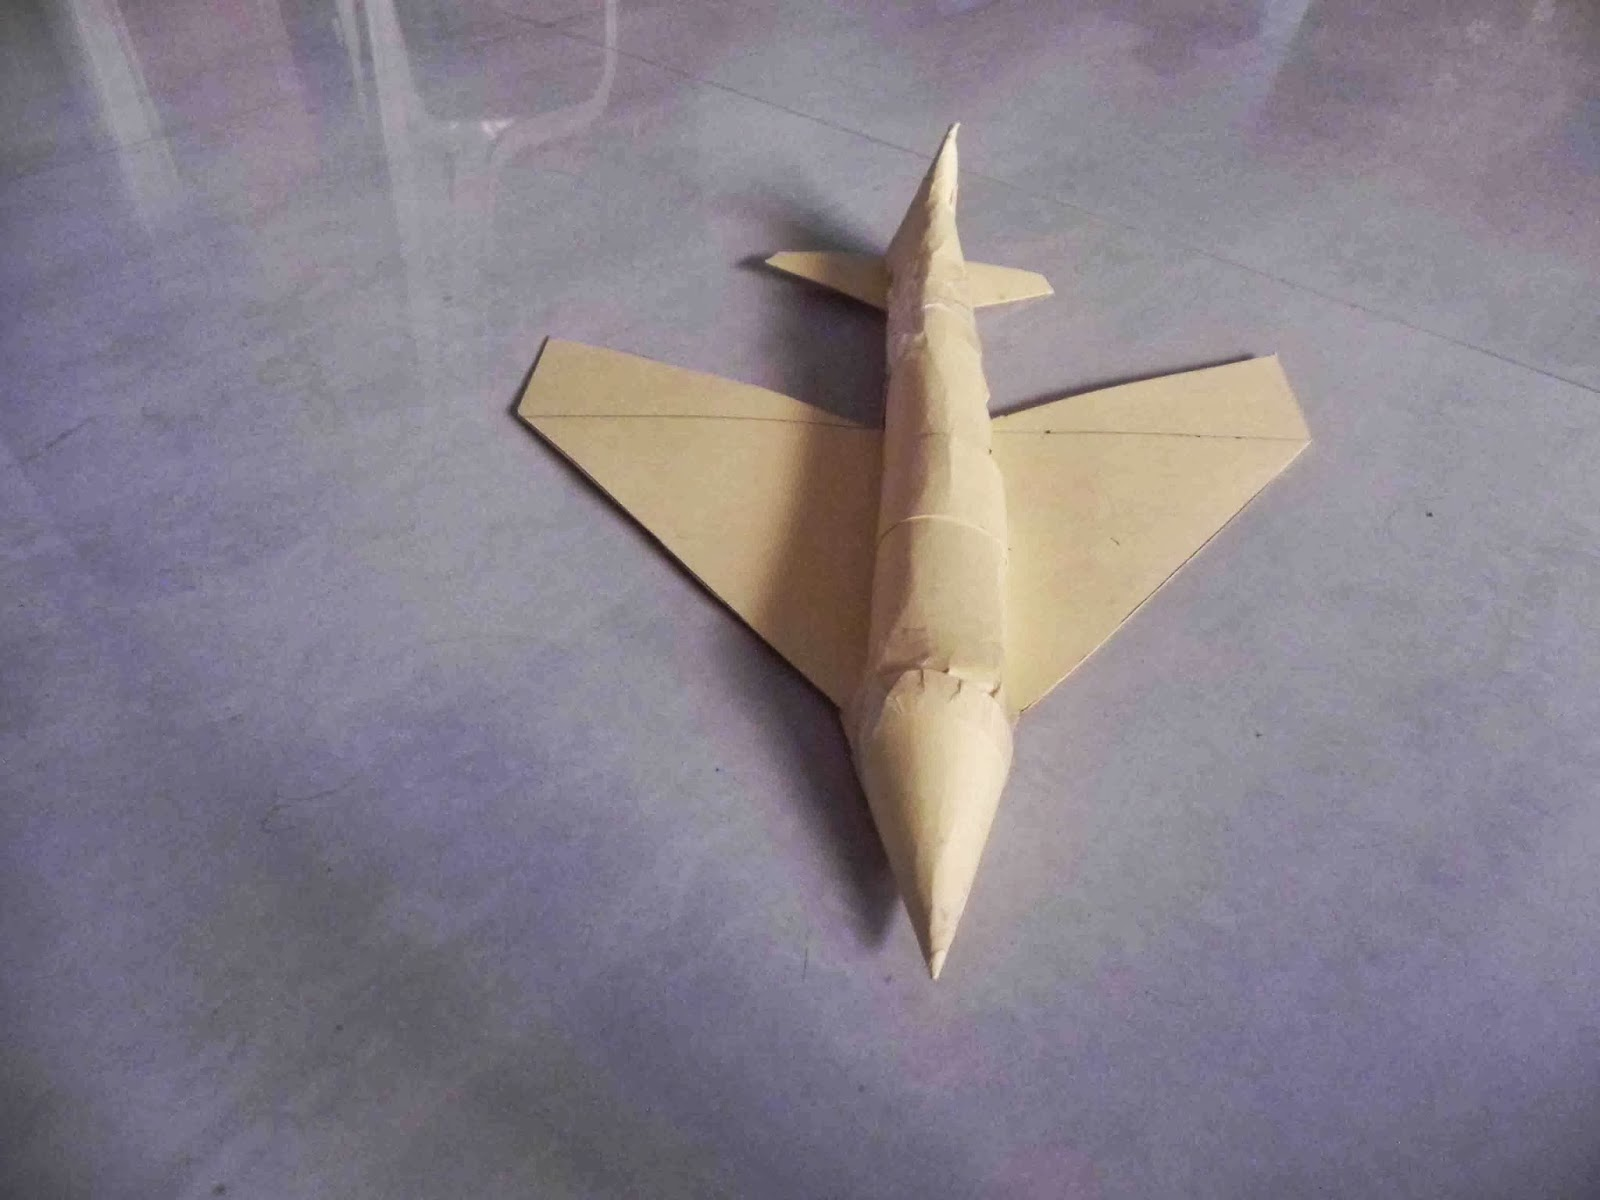 Art And Craft Ideas How To Make A Toy Aeroplane Step By Step At Home